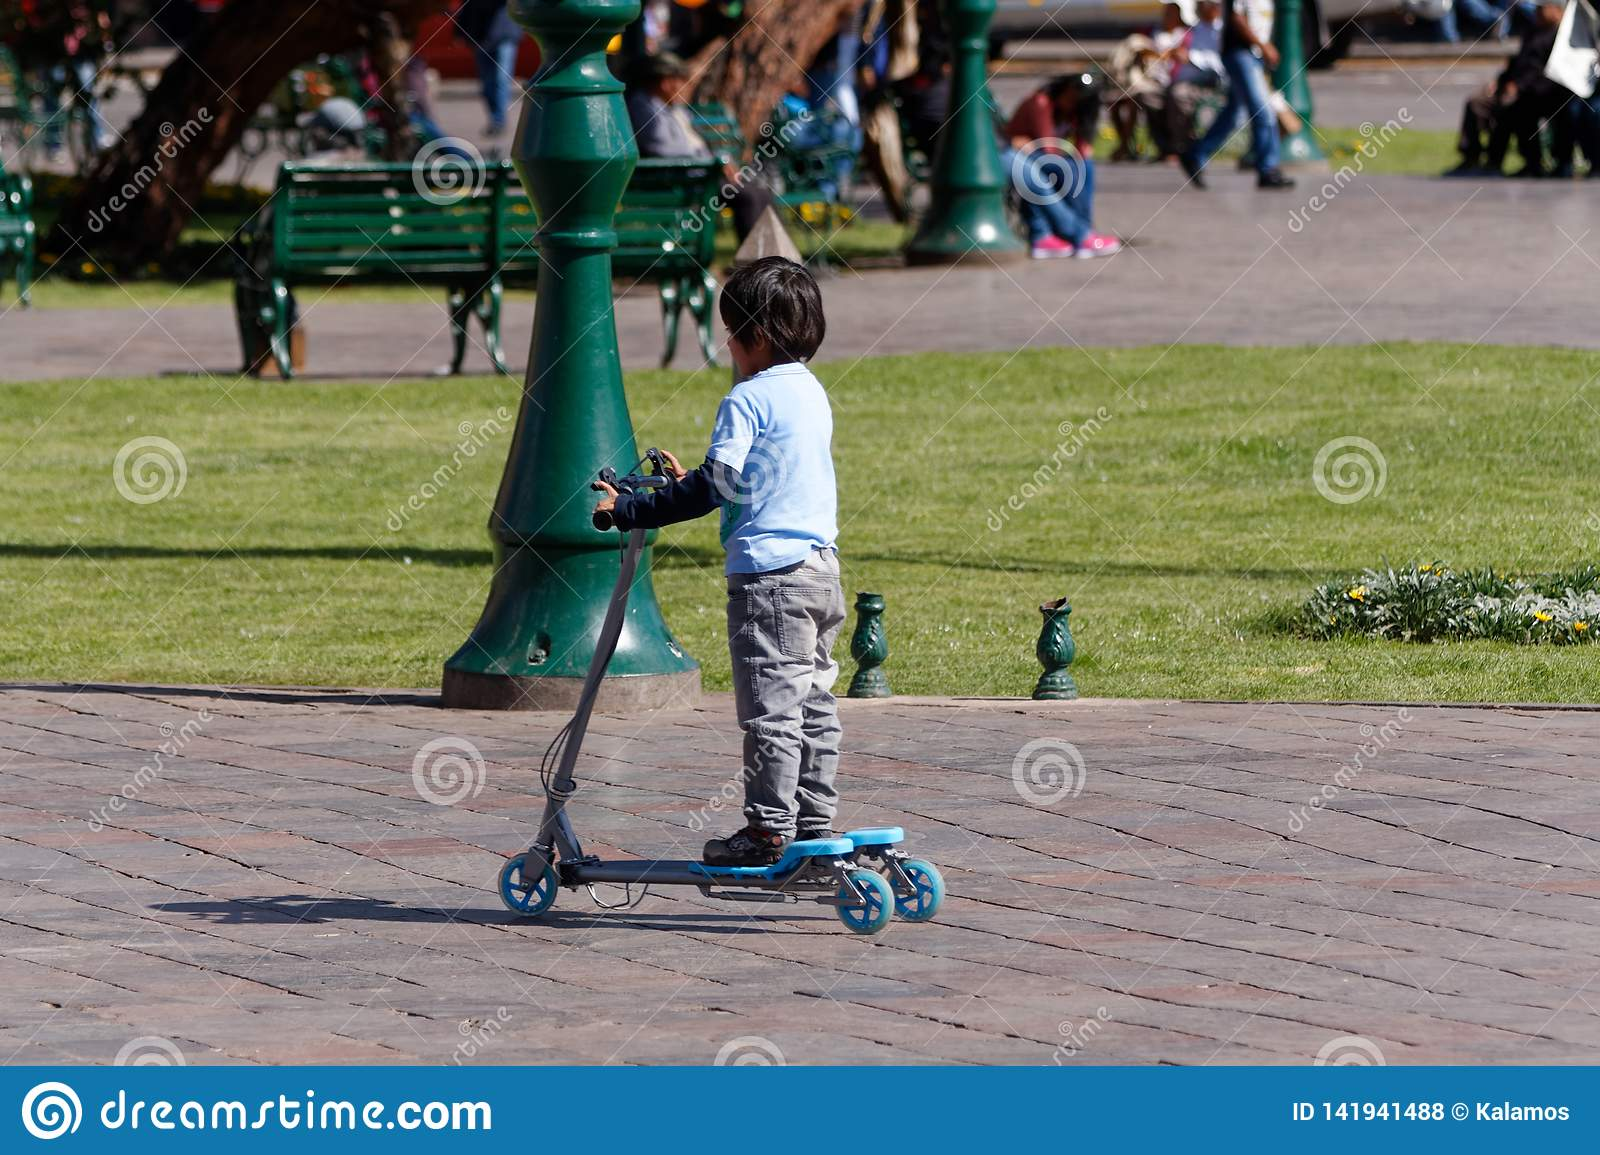 A boy riding his scooter